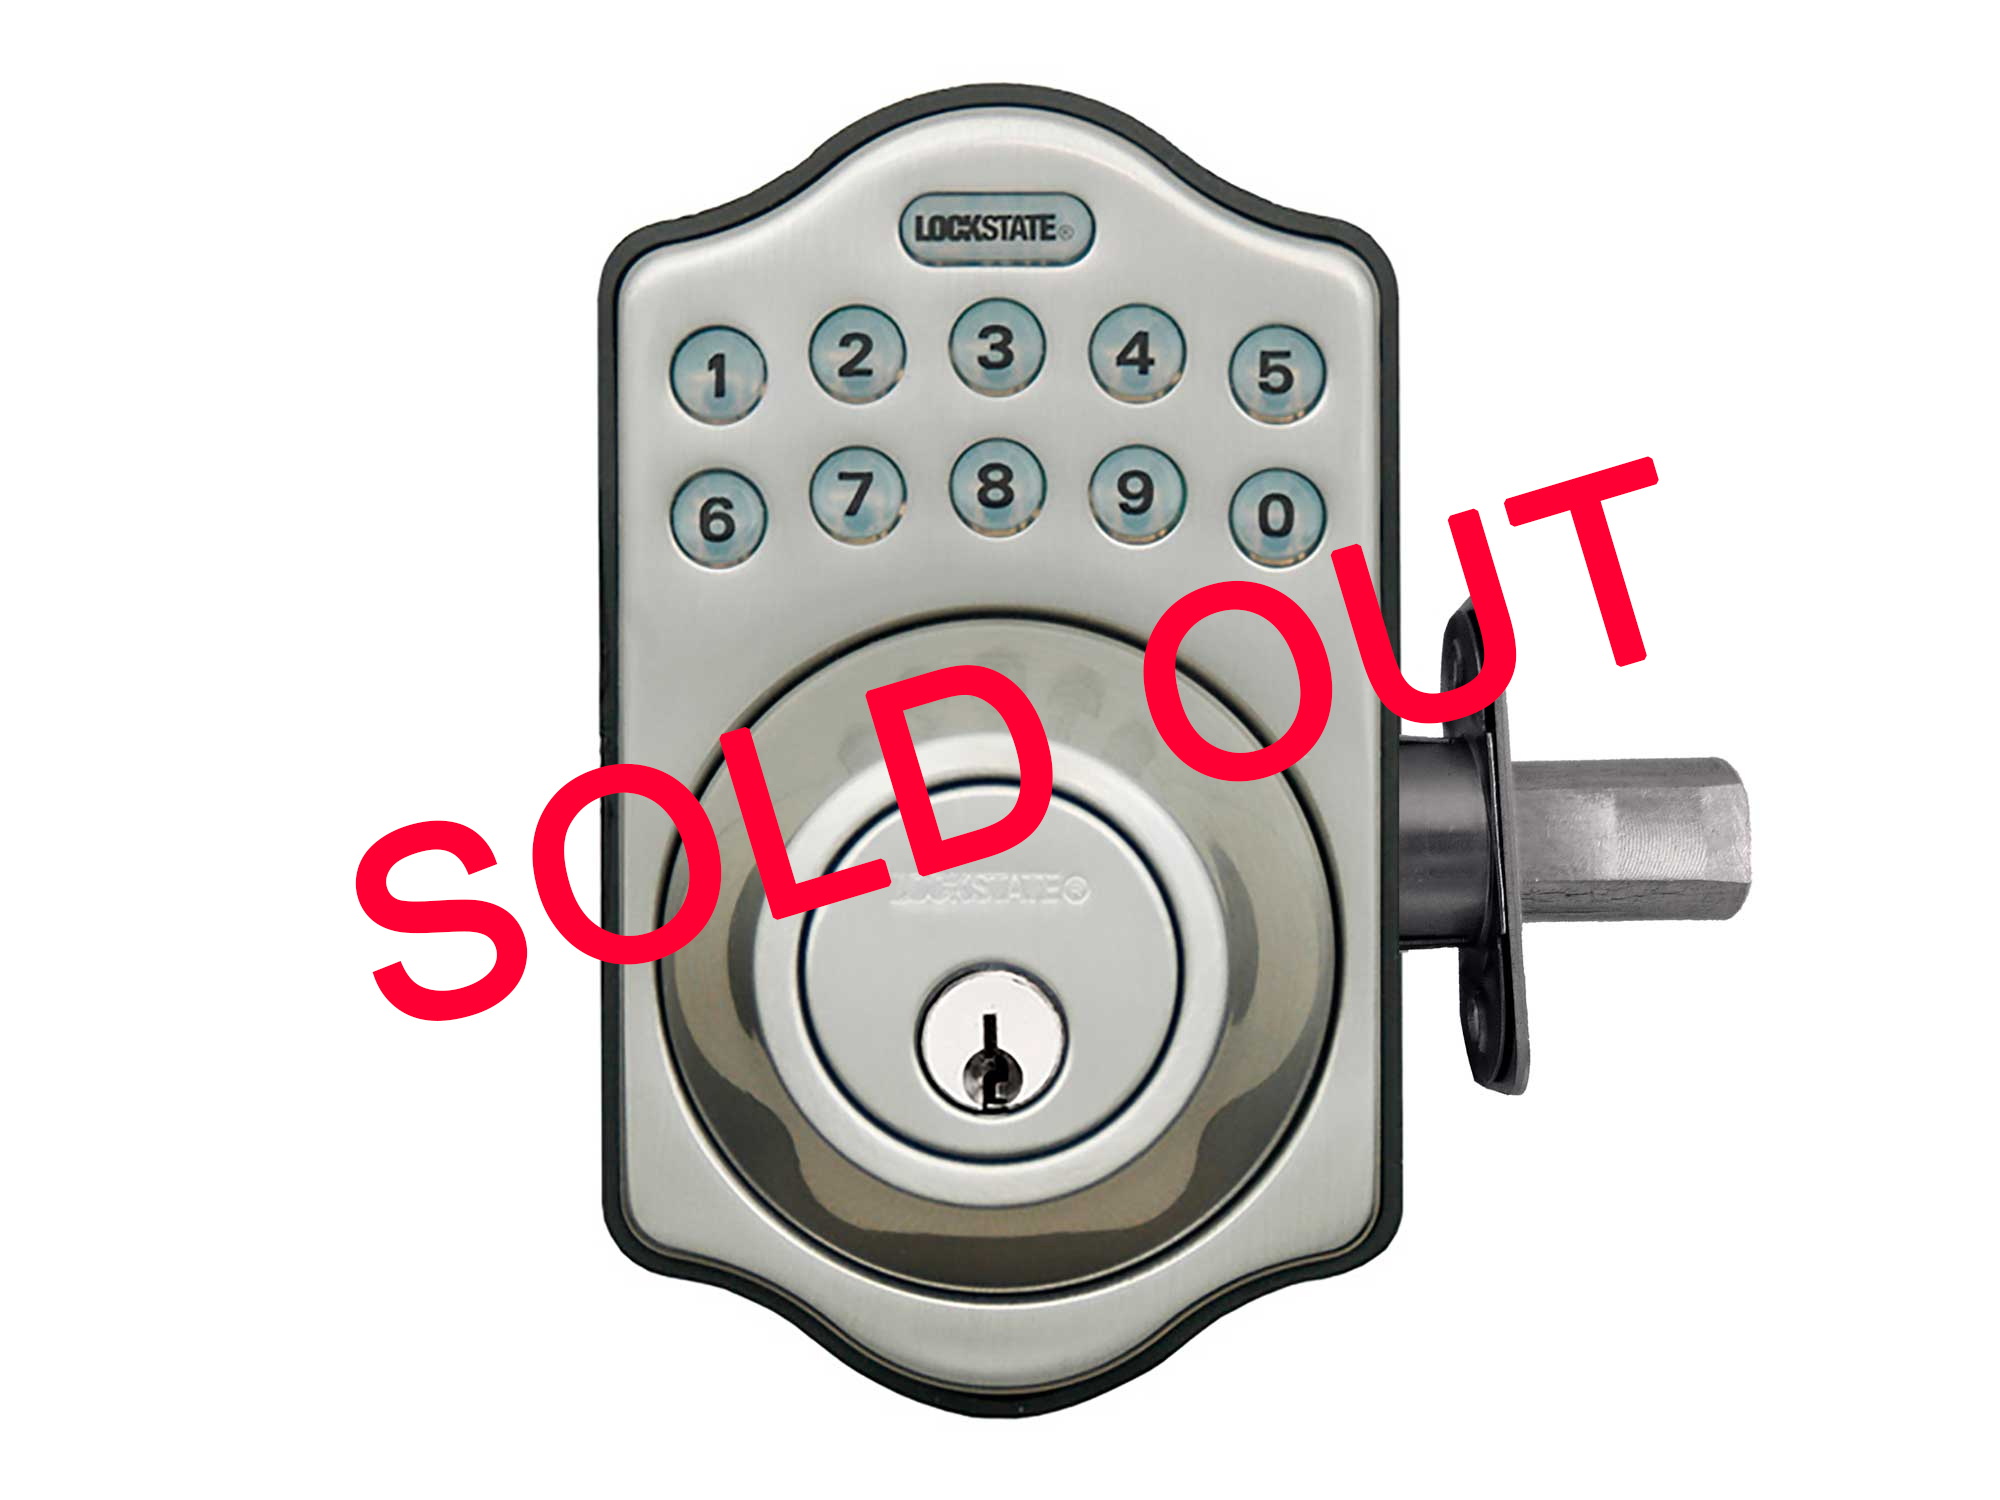 LockState RemoteLock WiFi Deadbolt 5i-A